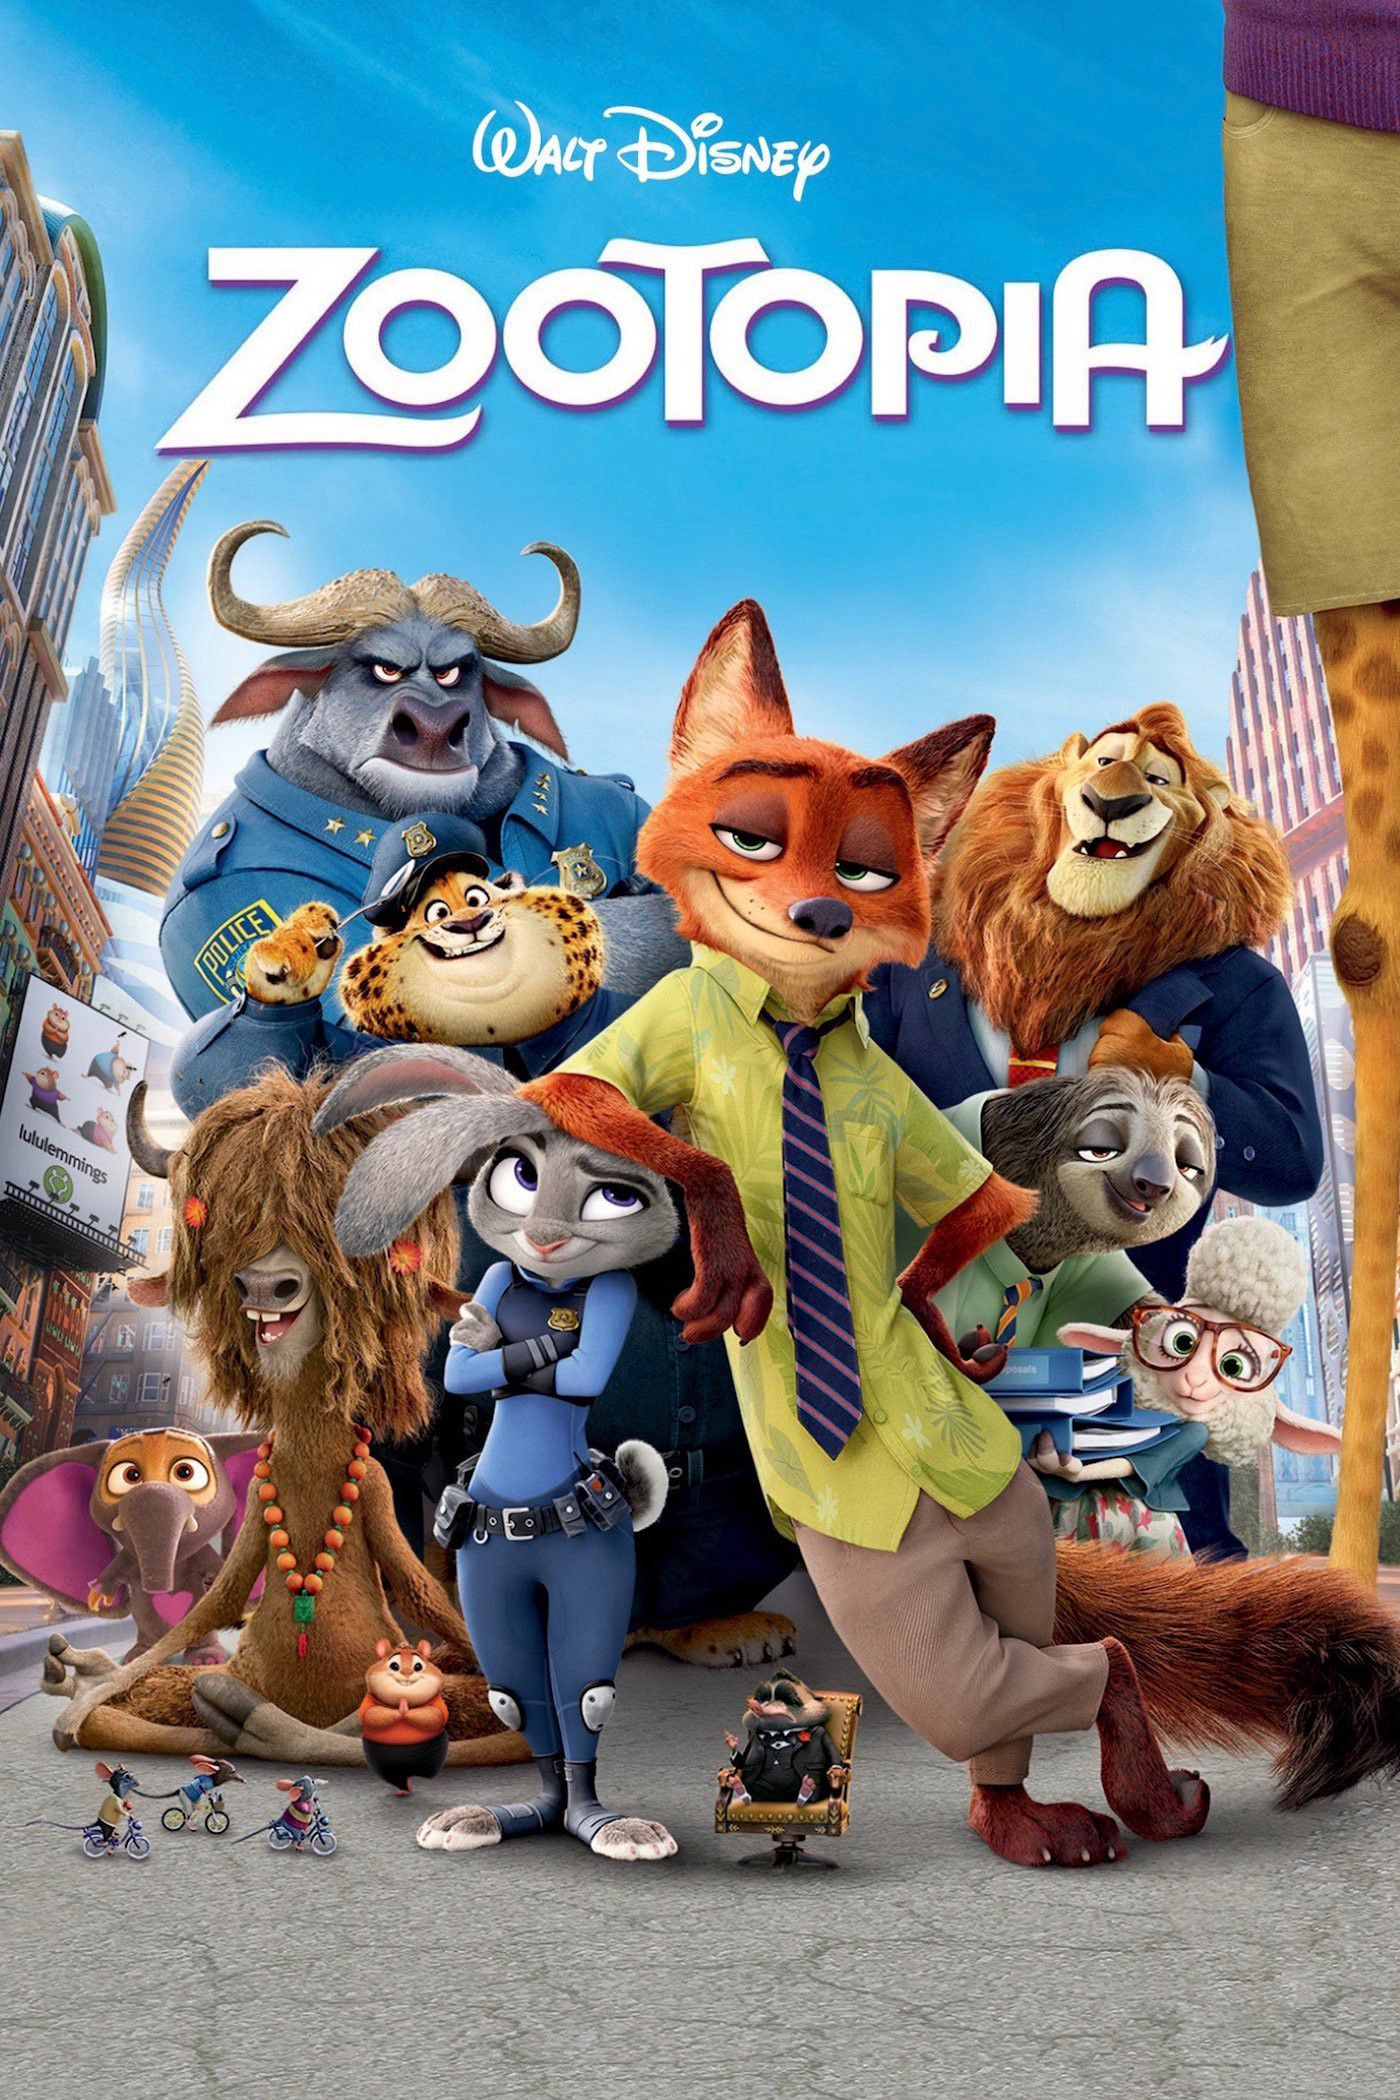 You Re Ready To Live In The Academy Award Winning Film Zootopia Whether Becoming An Eccentric Member Of The Zootopia C Zootopia Movie Zootopia Disney Zootopia